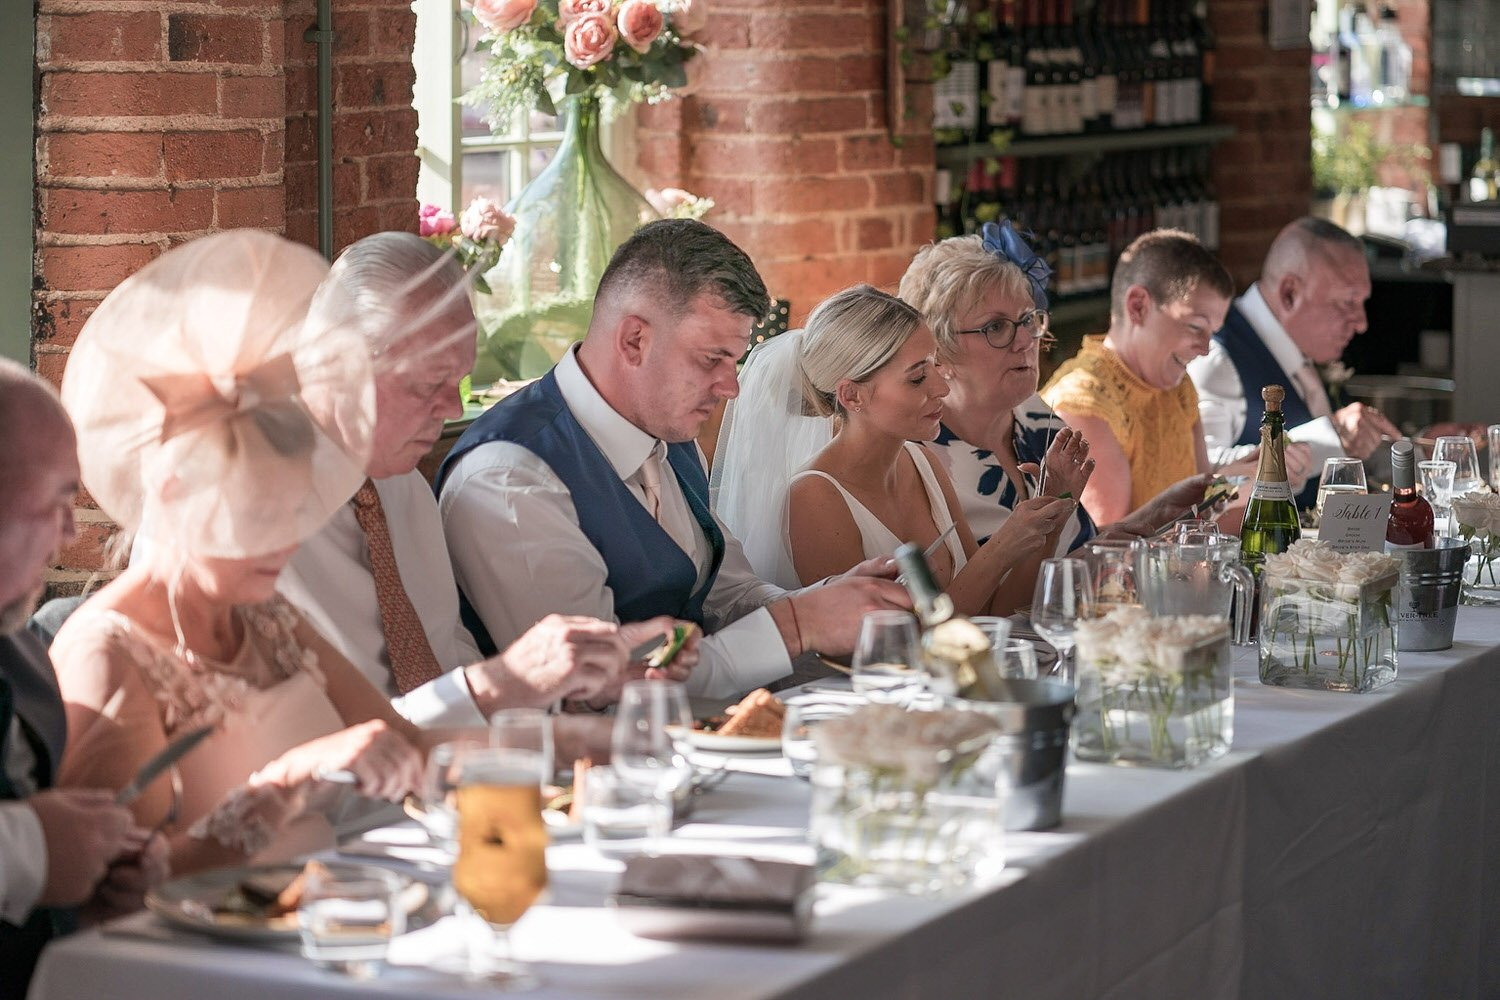 The Waterfront Market Harborough Weddings Photography wedding breakfast view of top table